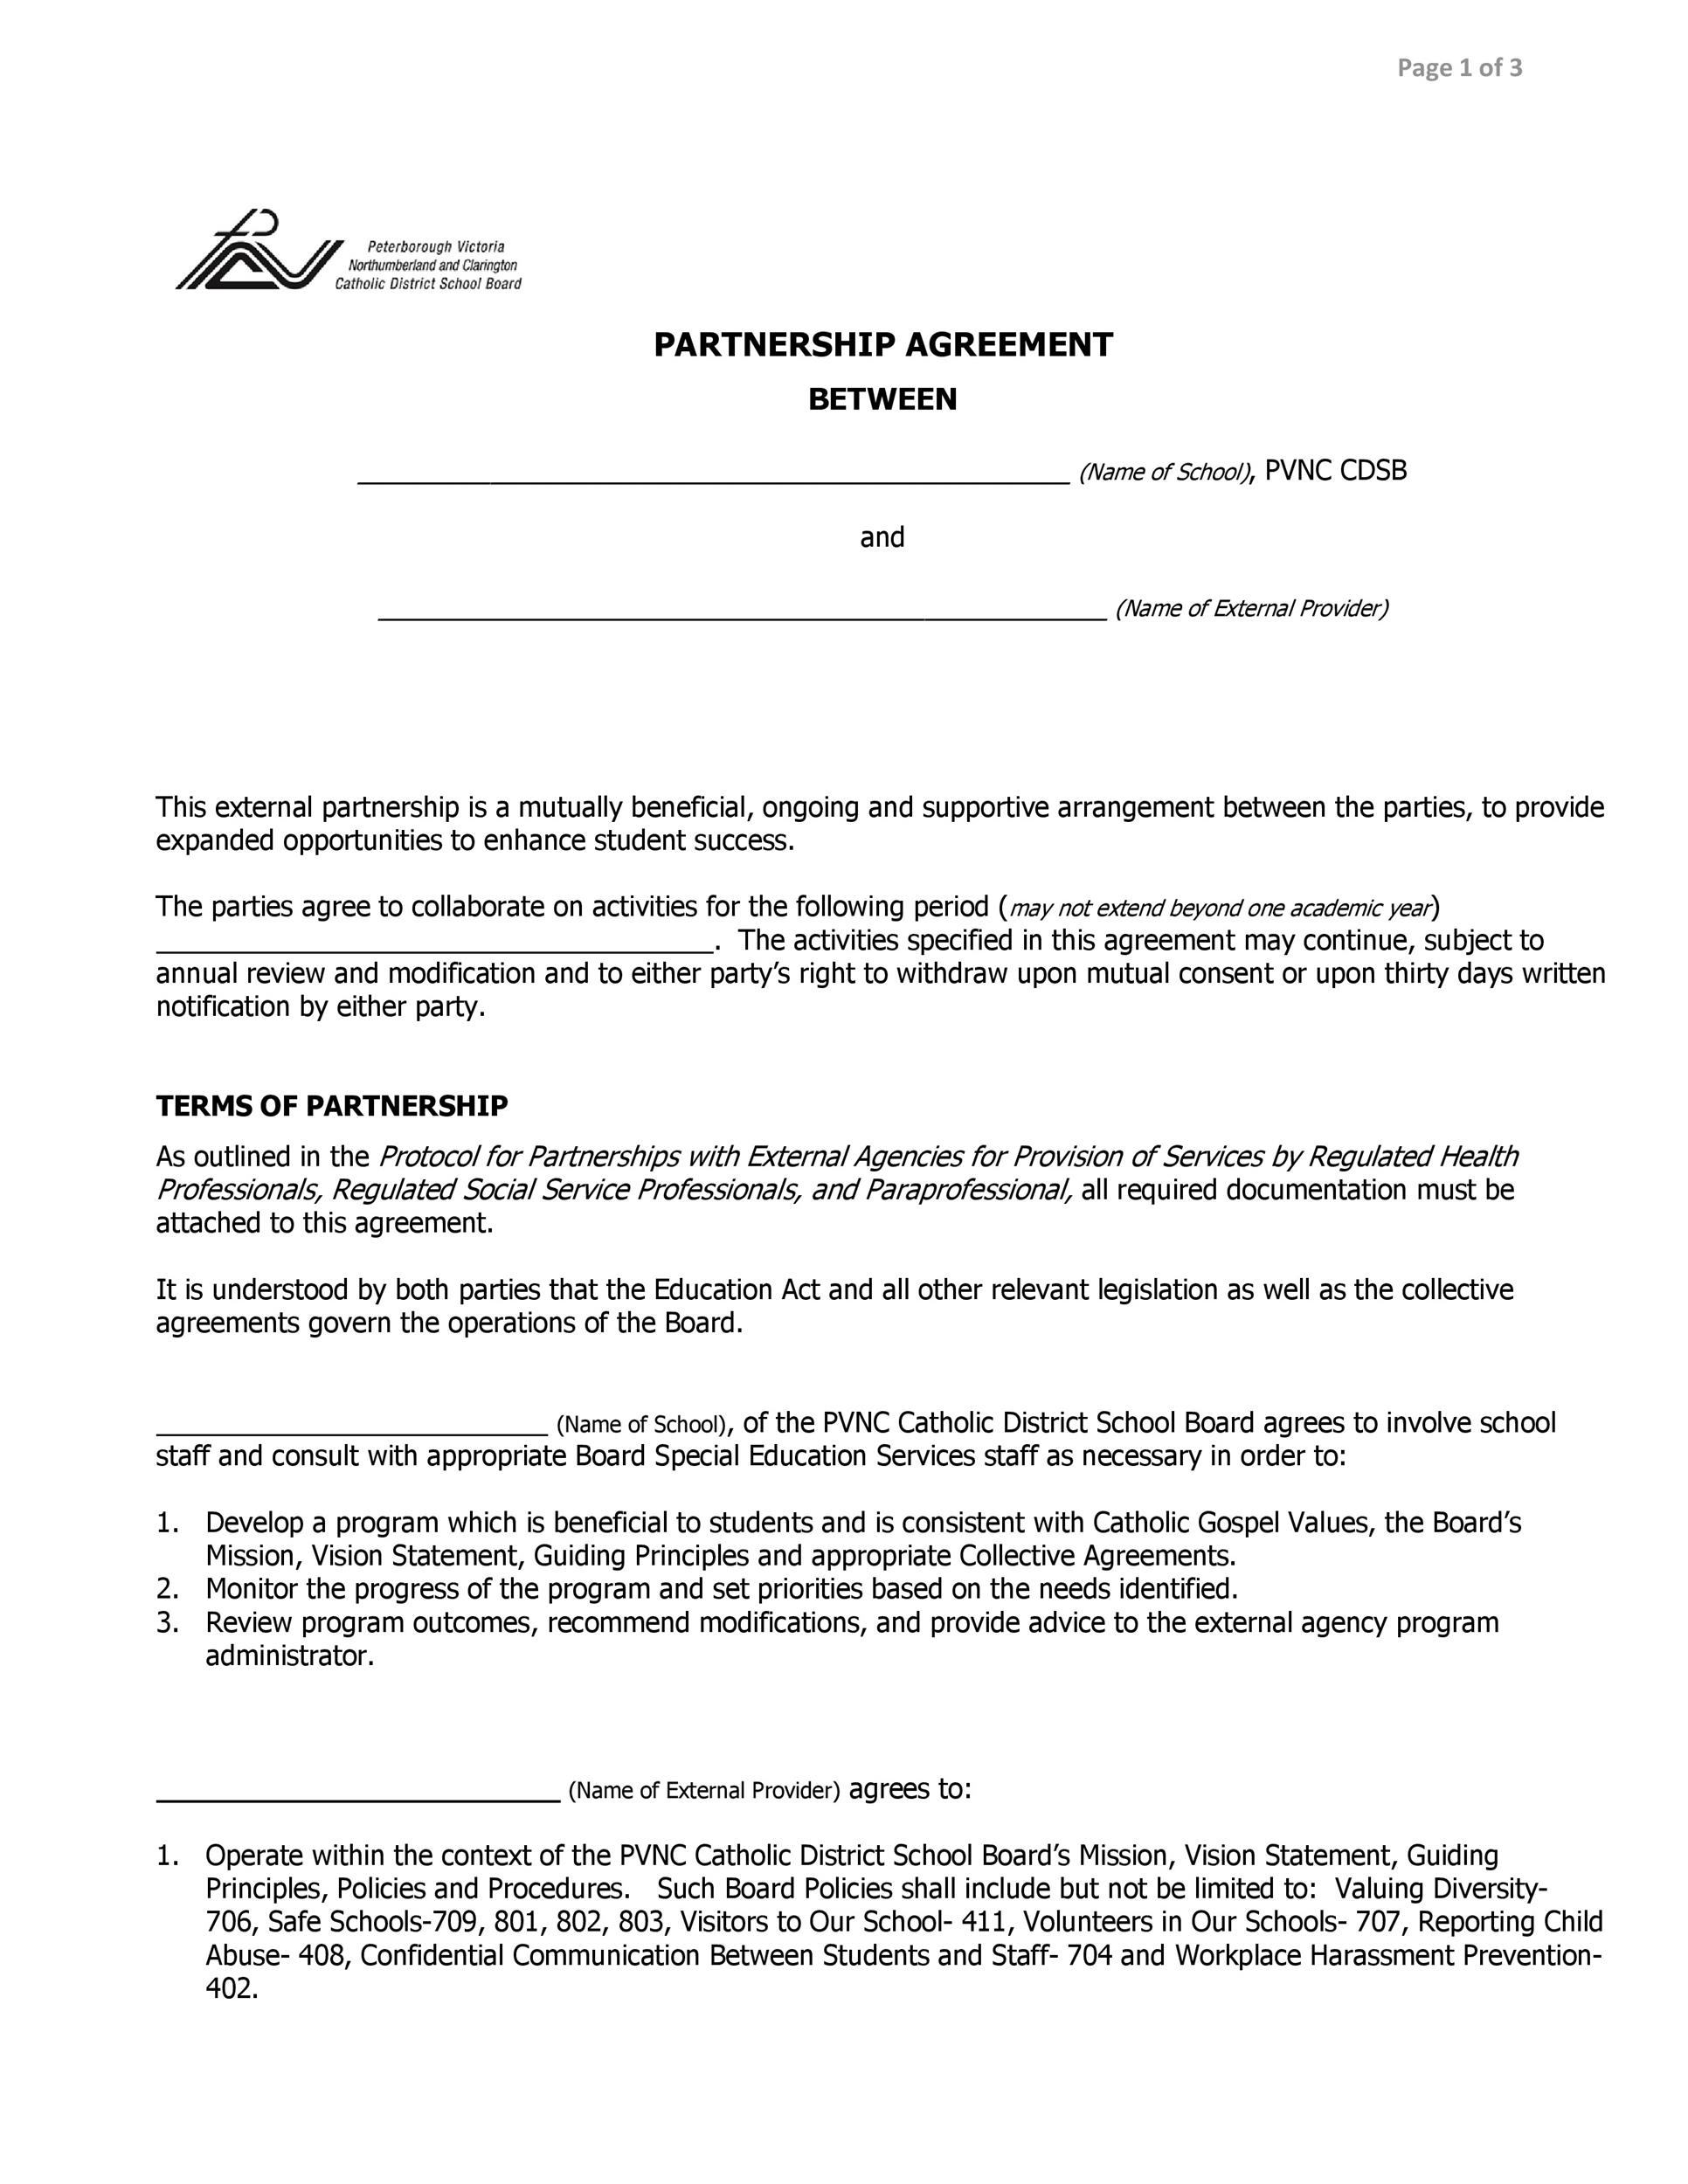 40 FREE Partnership Agreement Templates Business General – Business Partnership Contract